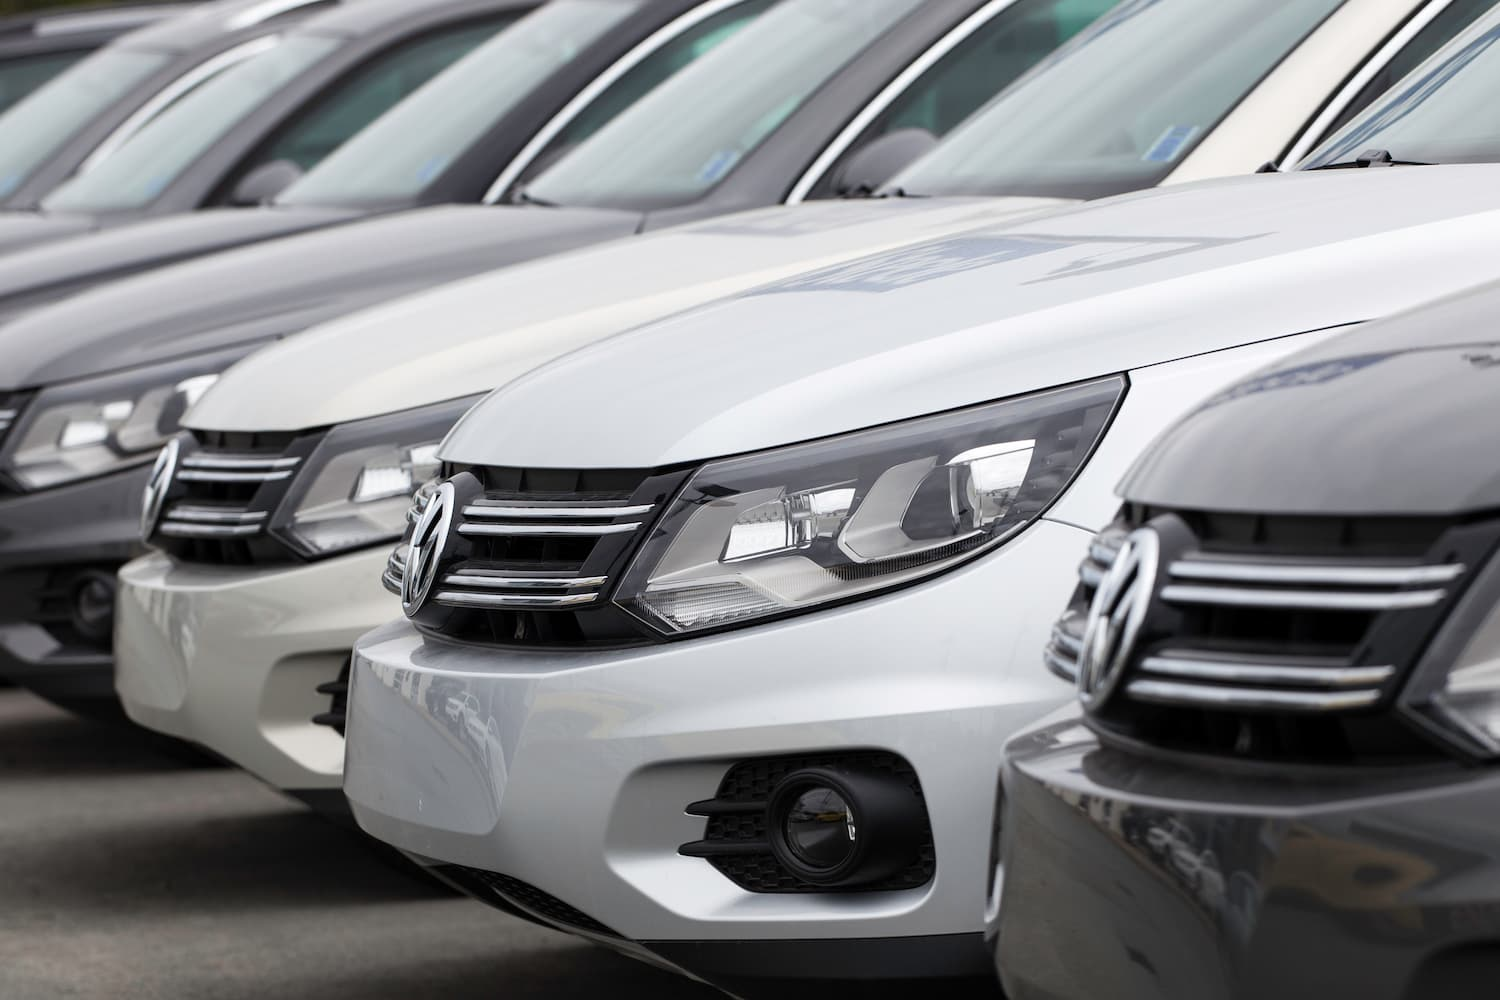 Image of VW cars parked beside each other at the dealership